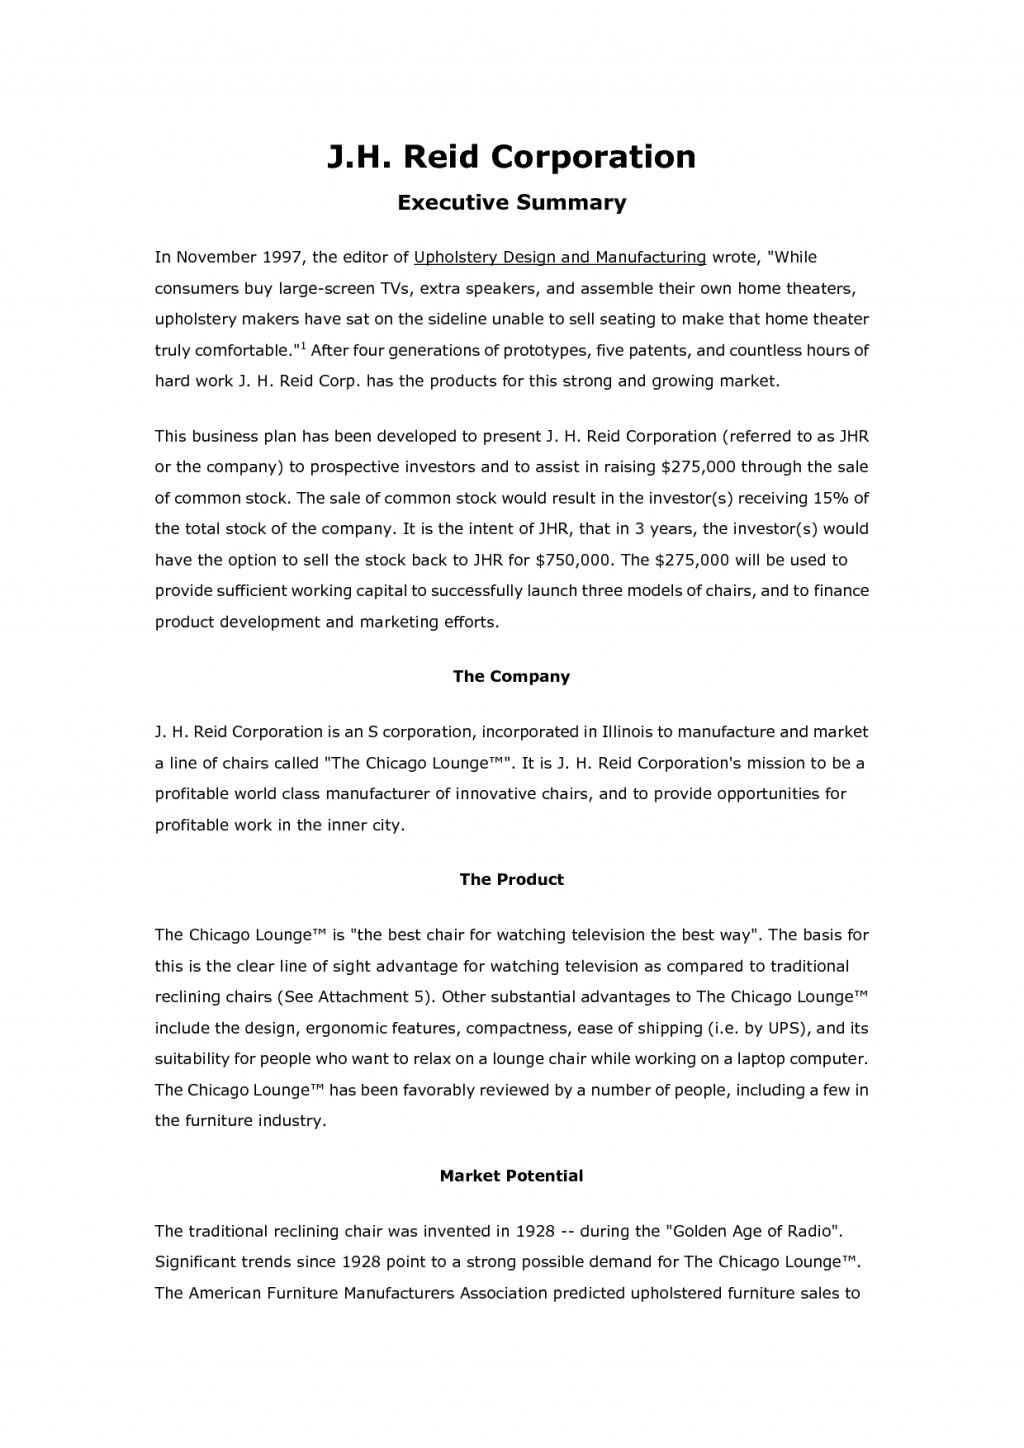 016 Hard Work Essay Example Business Plan Outstanding Large